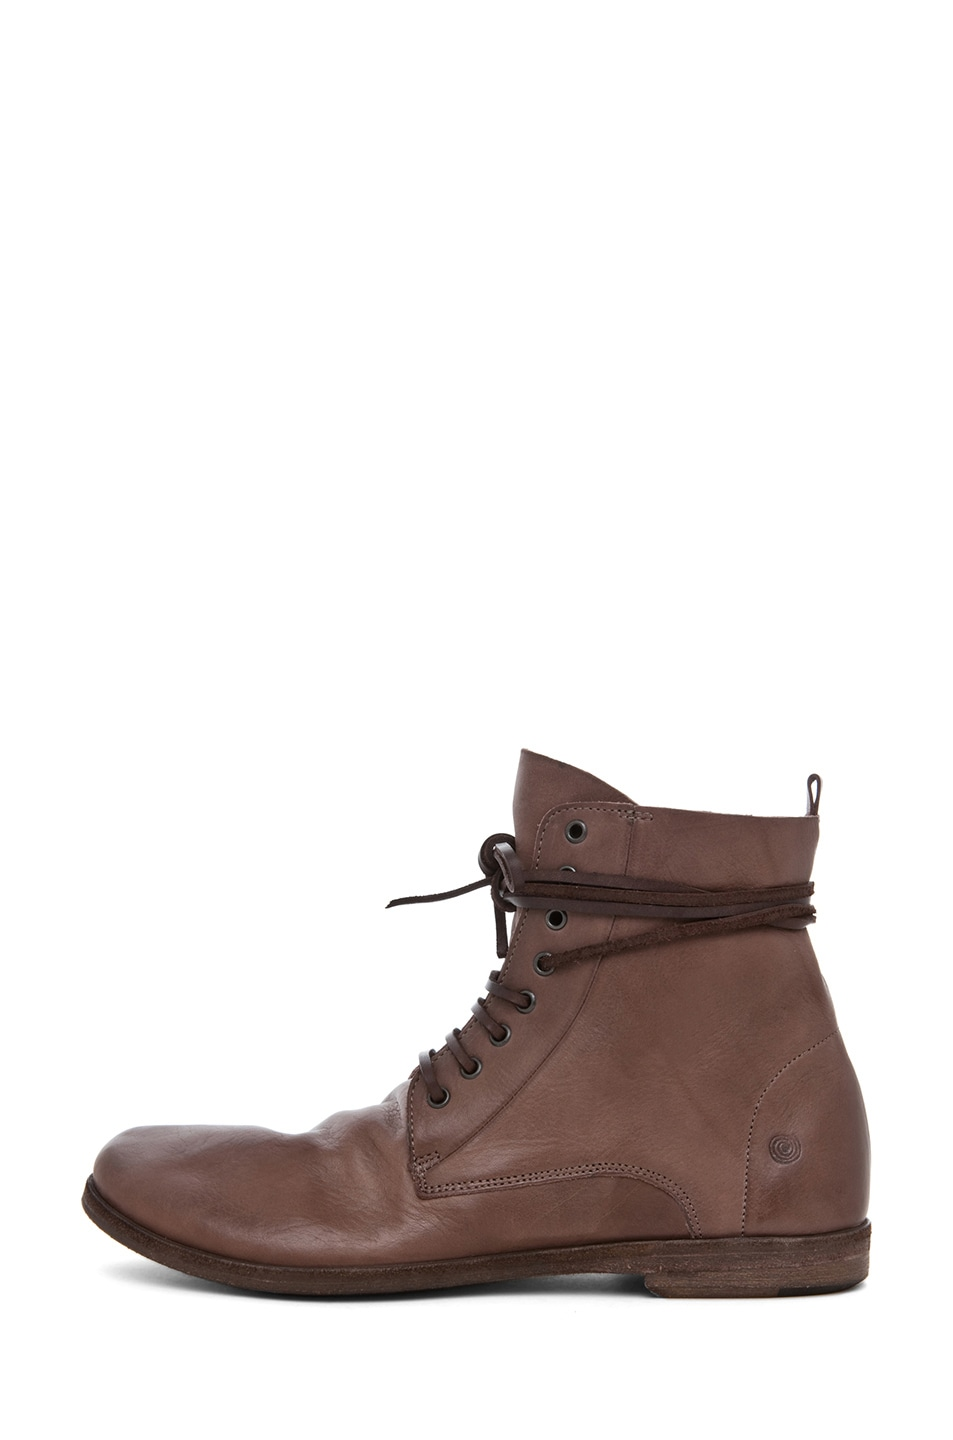 Image 1 of Marsell Lista Boots in Taupe